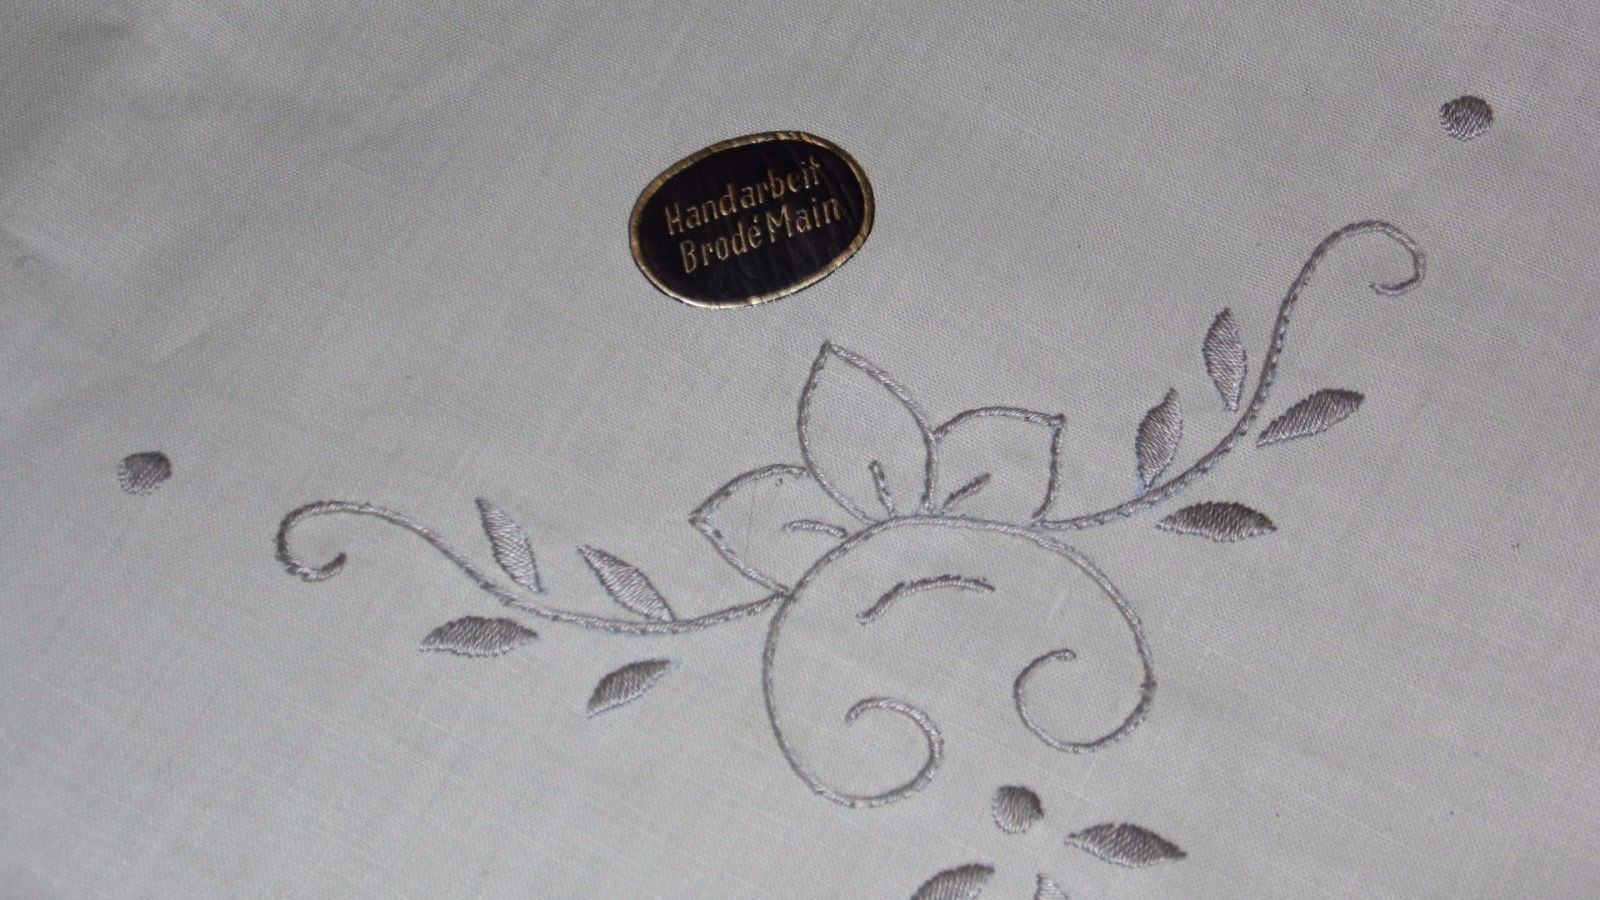 FRENCH BRODE MAIN HANDCRAFTED STURZENEGGER EMBROIDERY TABLECLOTH W/4 NAPKINS